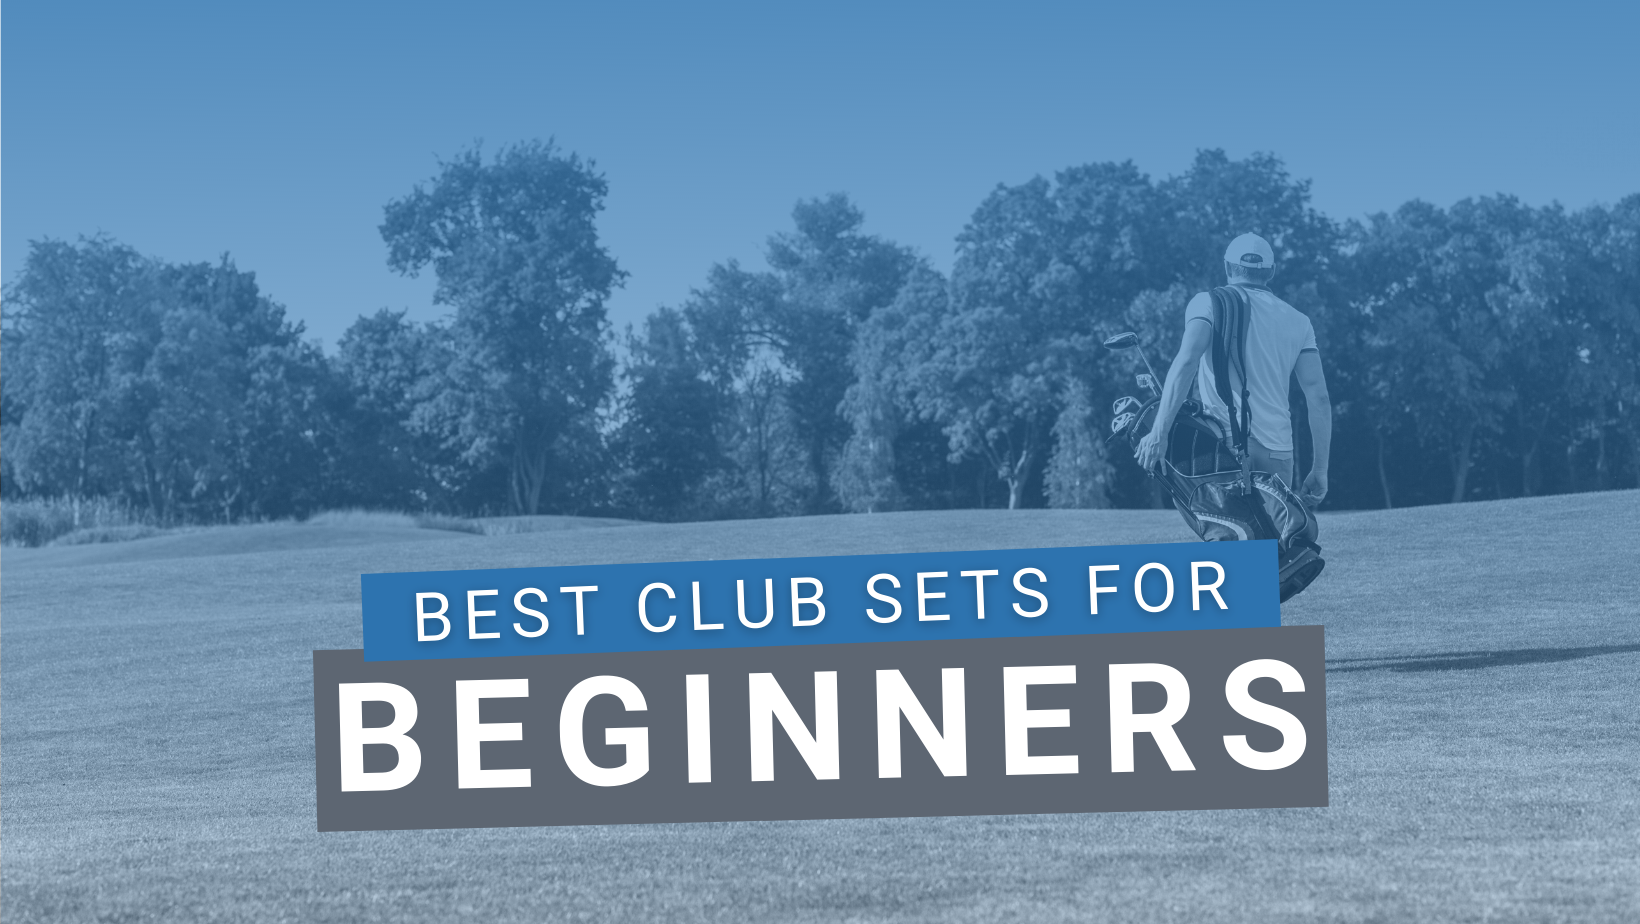 Beginner's Bible: Top 4 Complete Golf Club Sets for Beginners